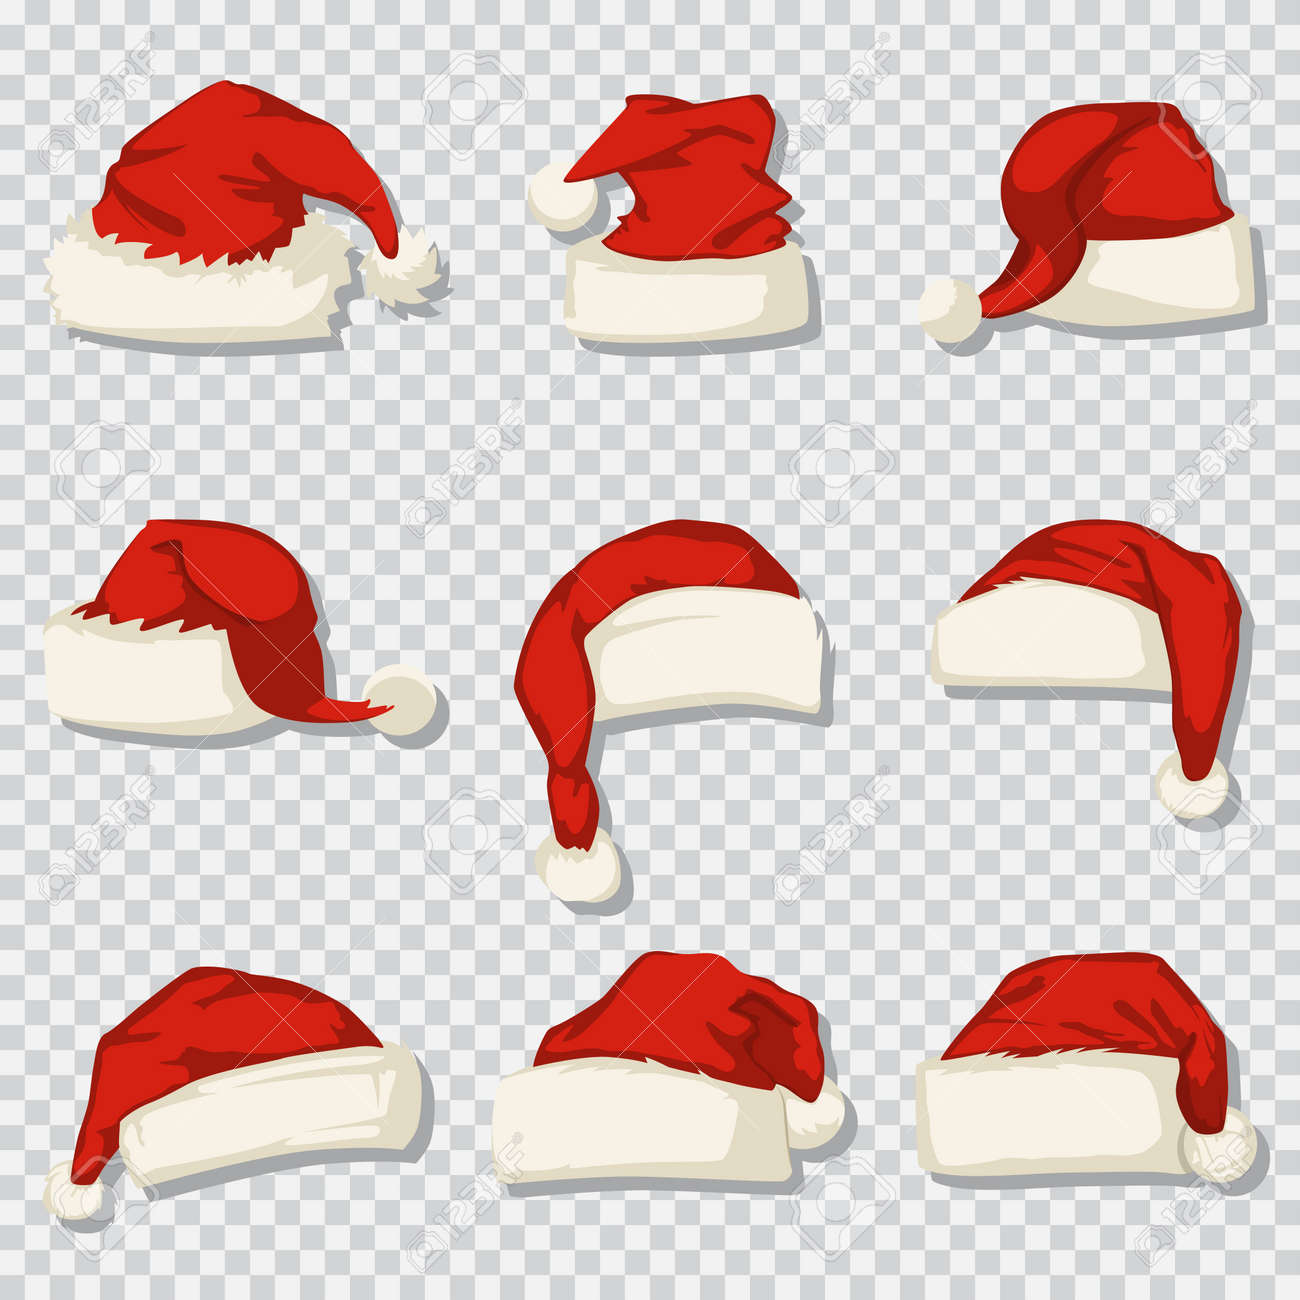 Santa Claus hat set isolated on a transparent background. Vector cartoon icons of Christmas decorative elements. - 91006920